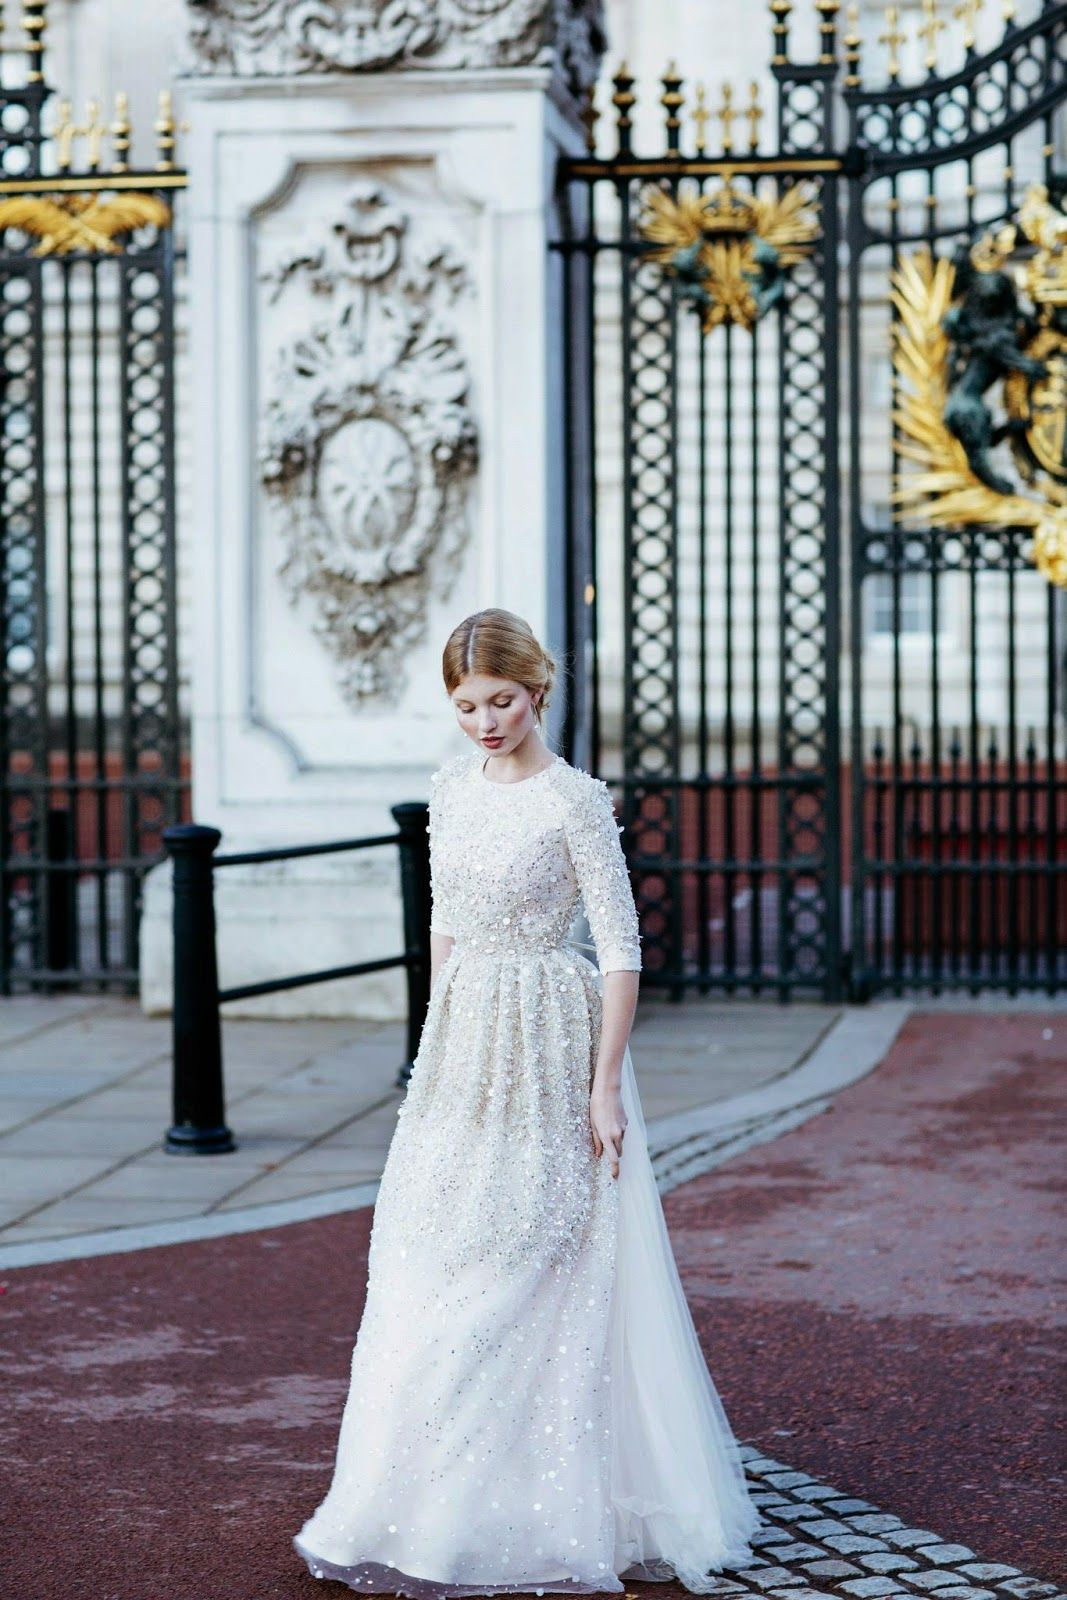 See Evening And Wedding Gowns With Sleeves On Our Blog